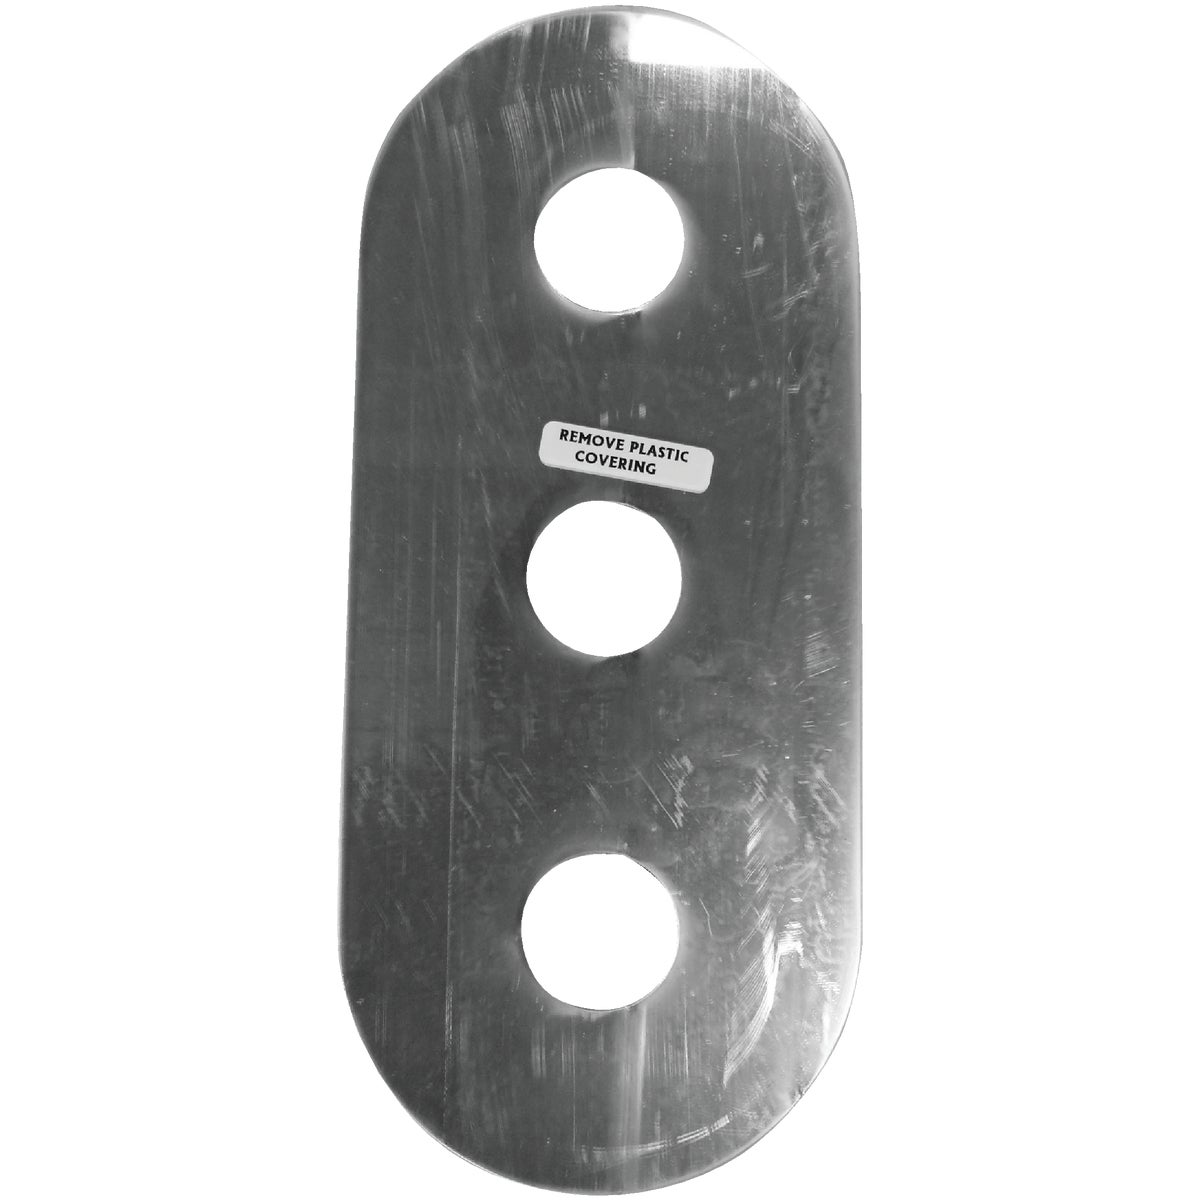 3-HANDLE COVER-UP PLATE - CU-300 by P P P Mfg